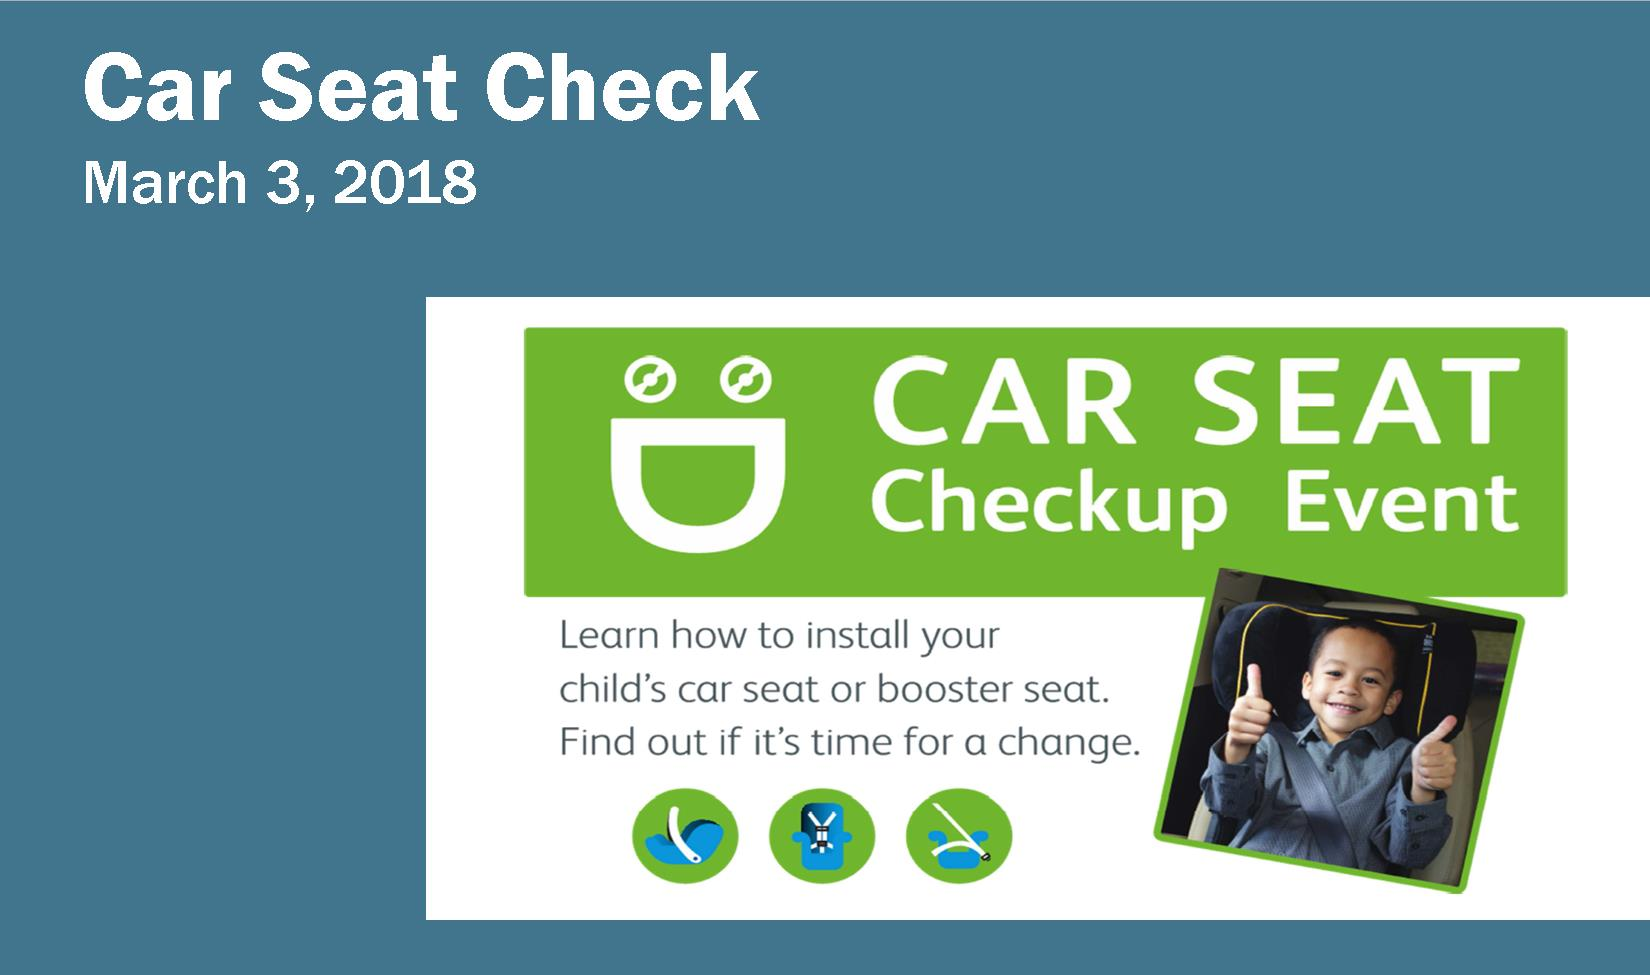 Car Seat Check Announcement